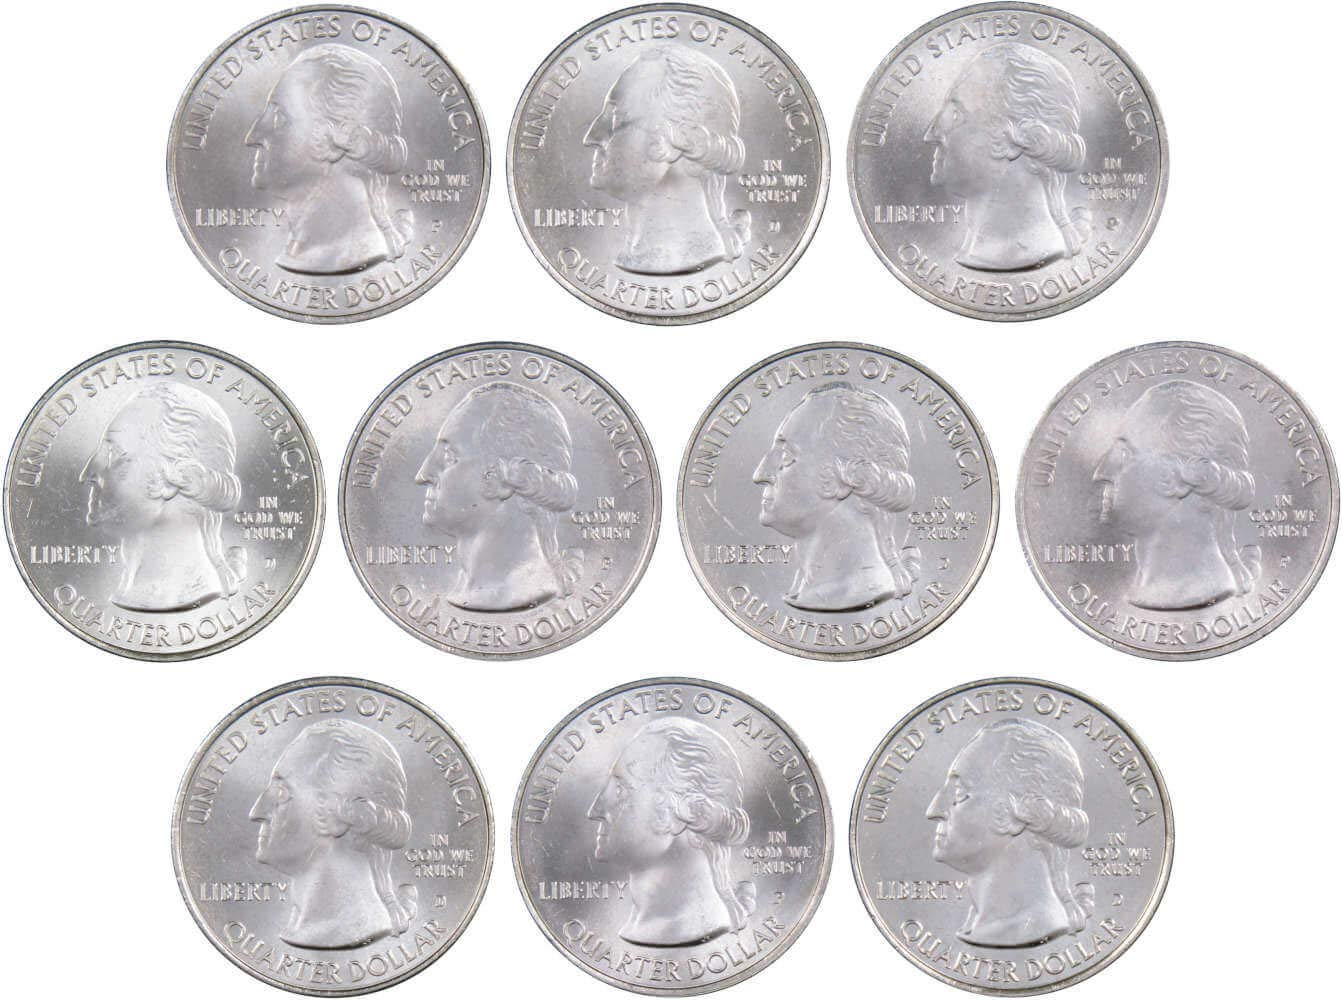 2015 S /& Proofs 25C Boombay Hook National Parks ATB Quarter Set Uncirculated